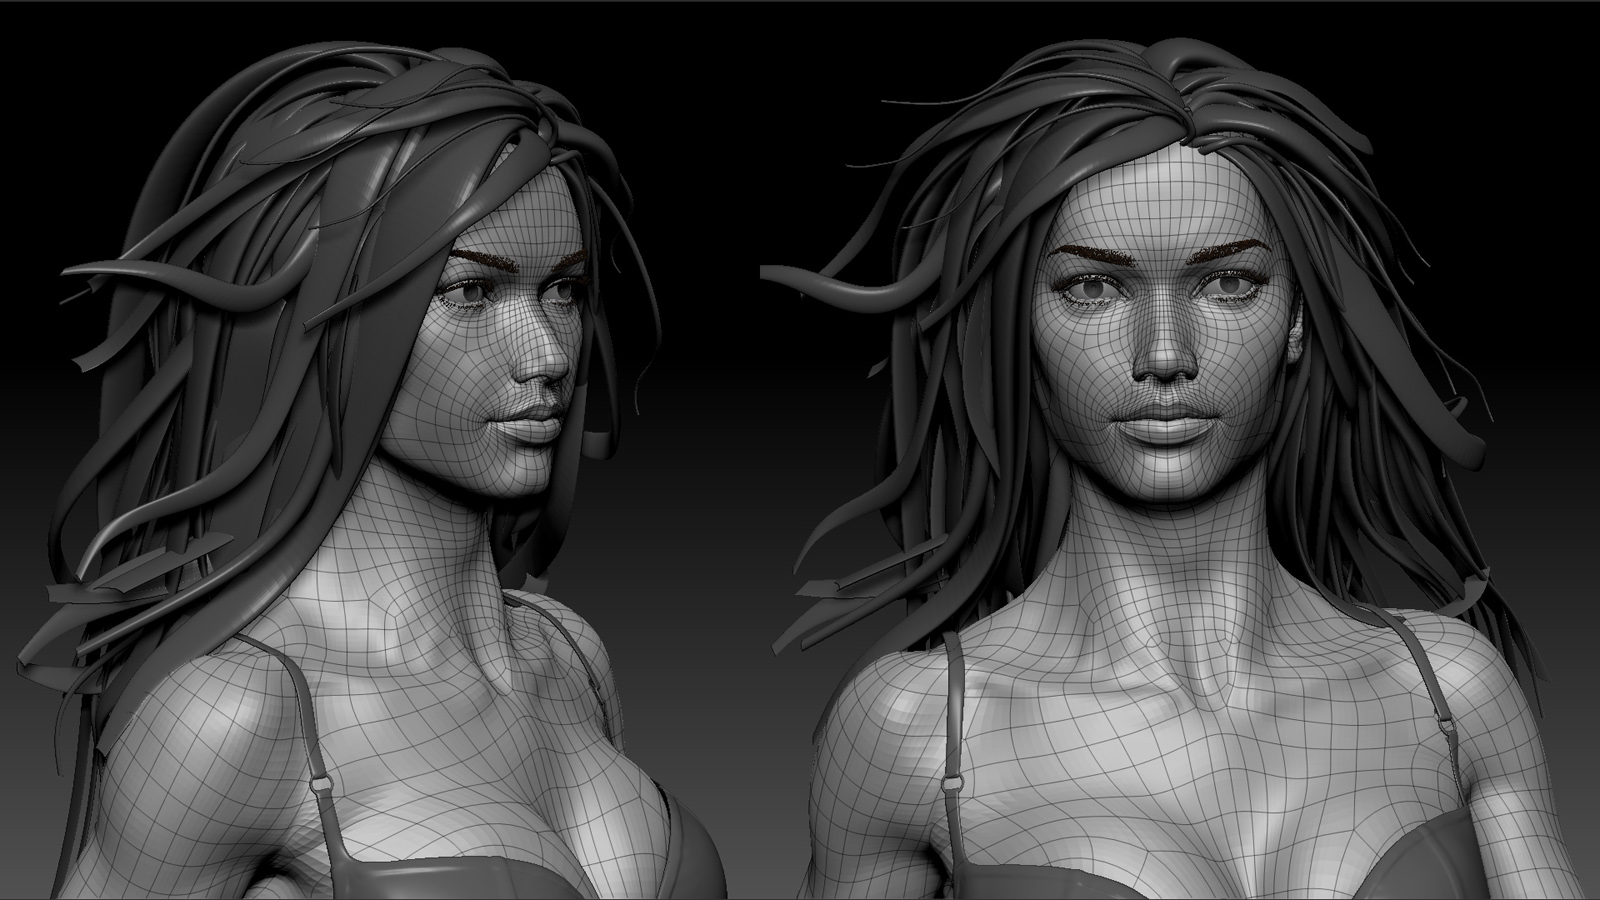 adriana_final_face_composite.jpg